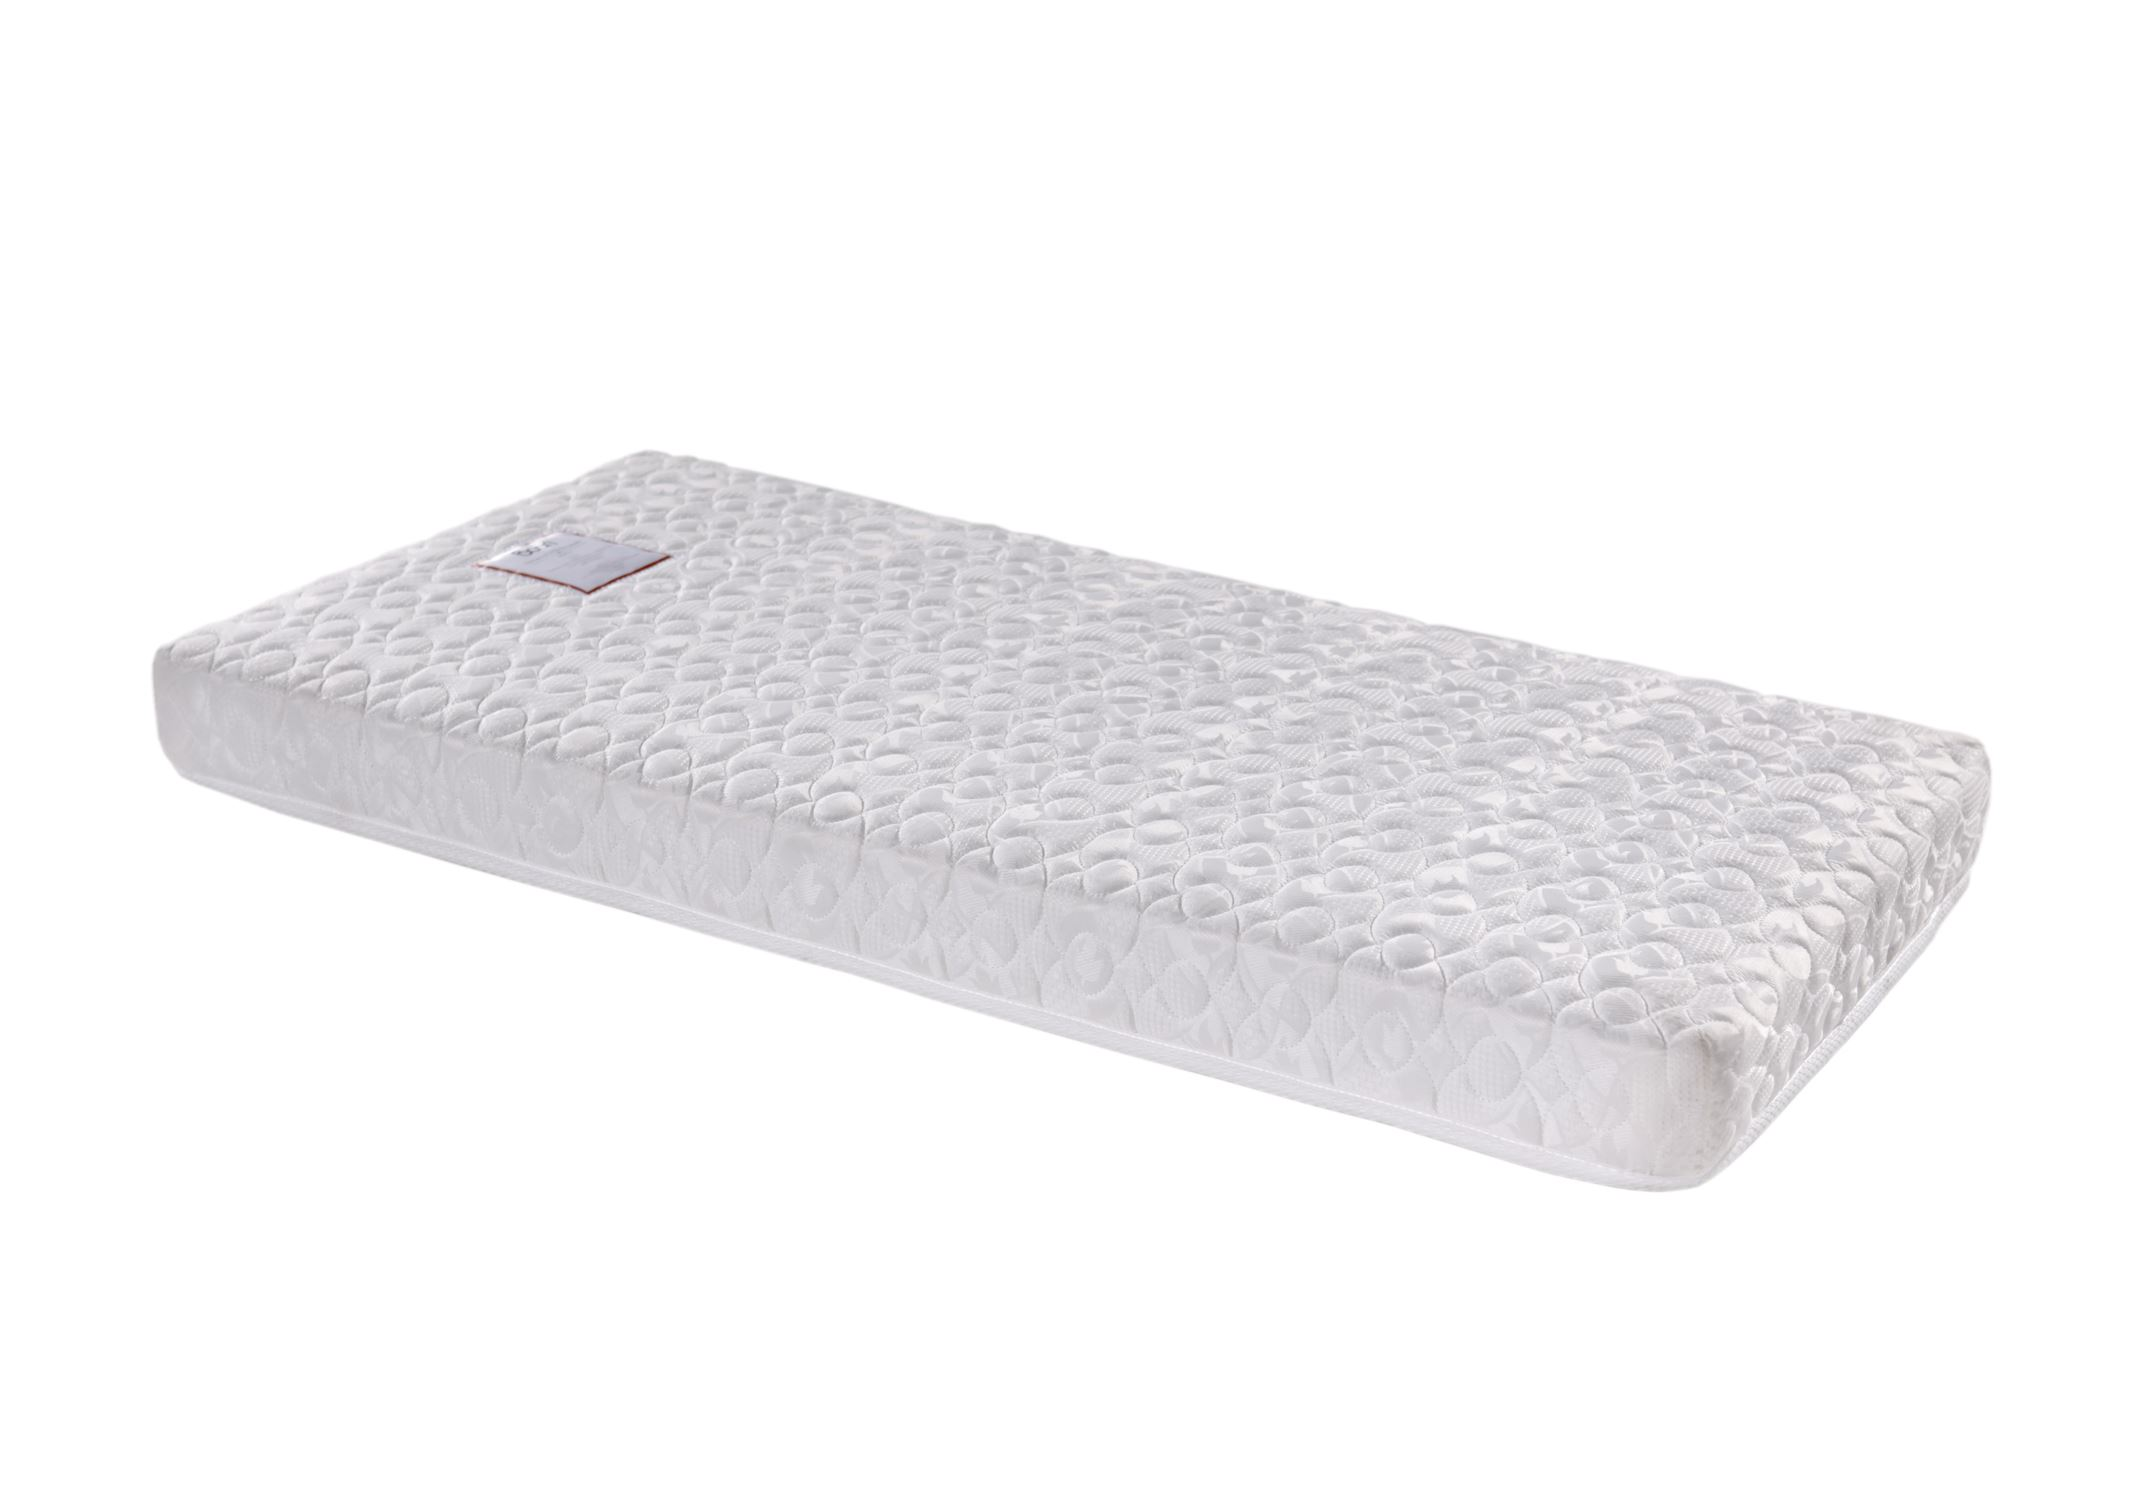 Boori Breathable Innerspring Mattress